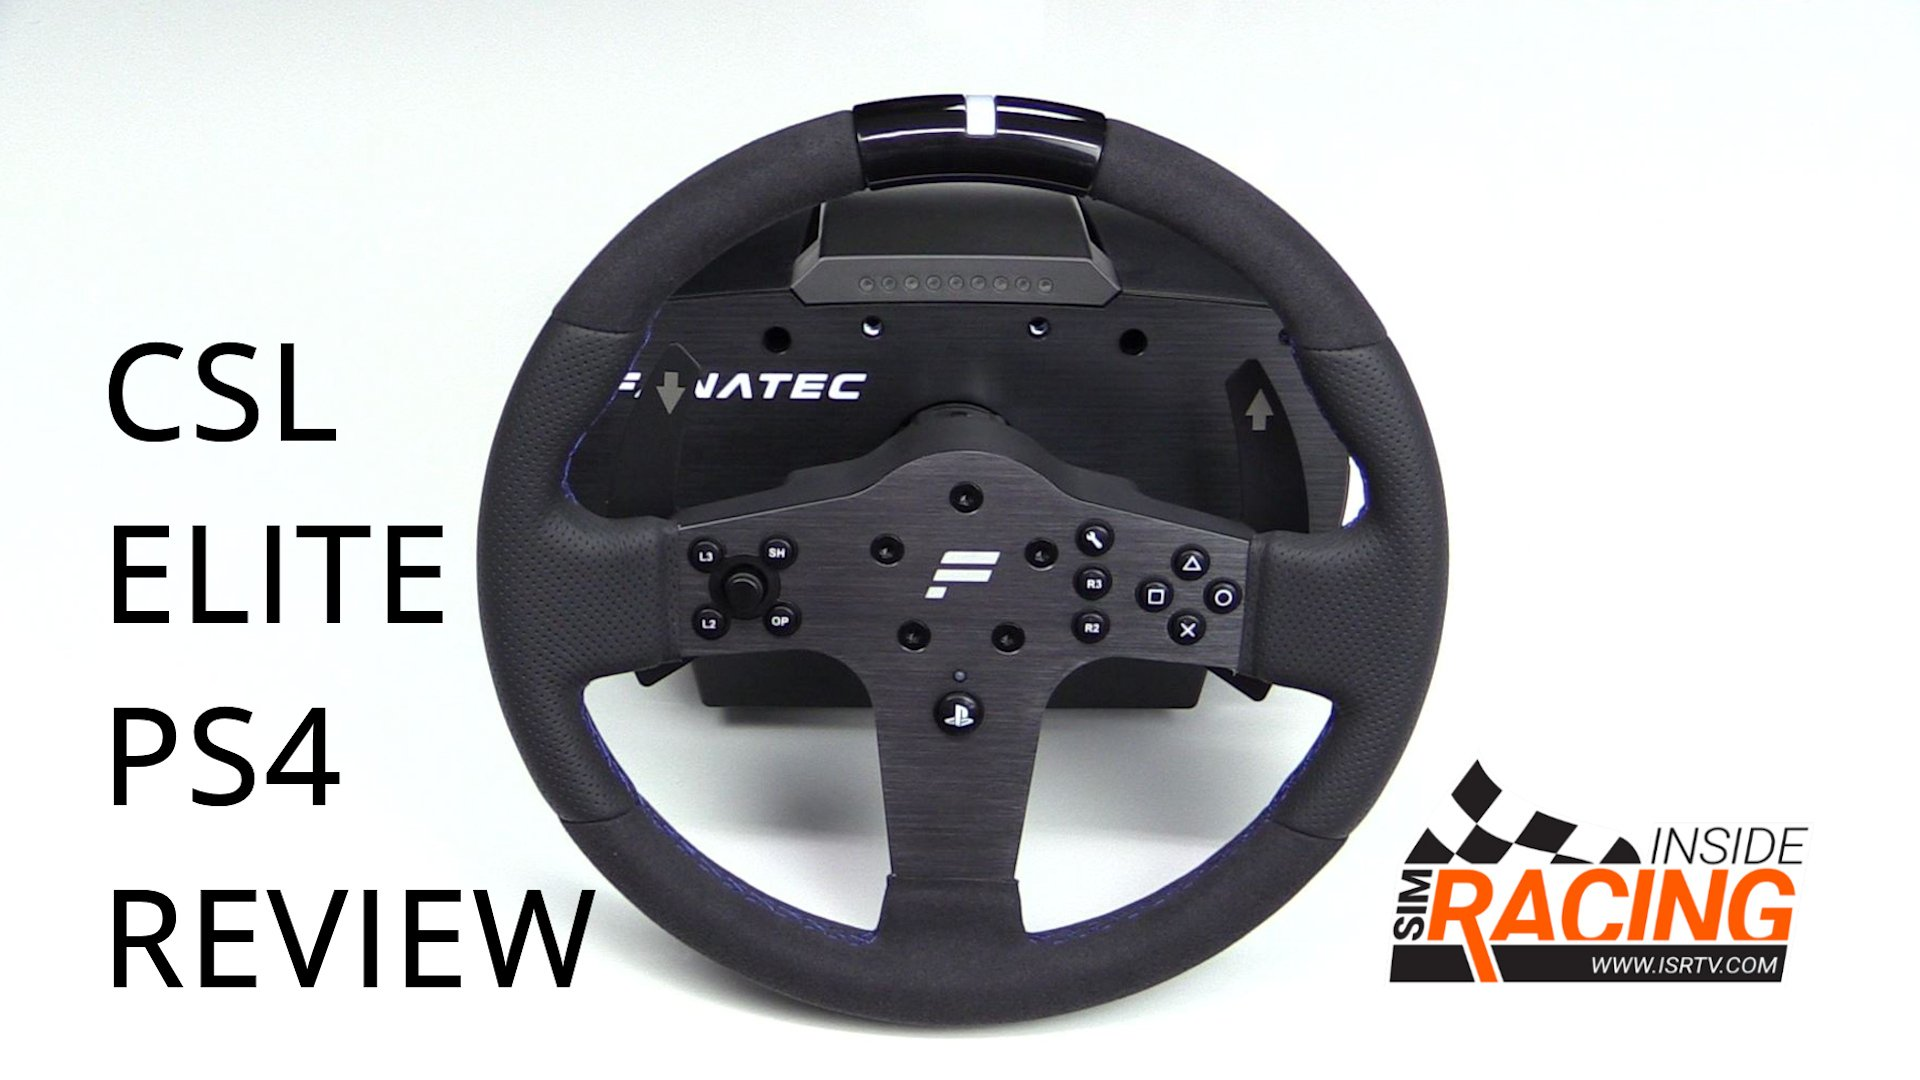 Fanatec CSL Elite Racing Wheel for the PlayStation 4 Review